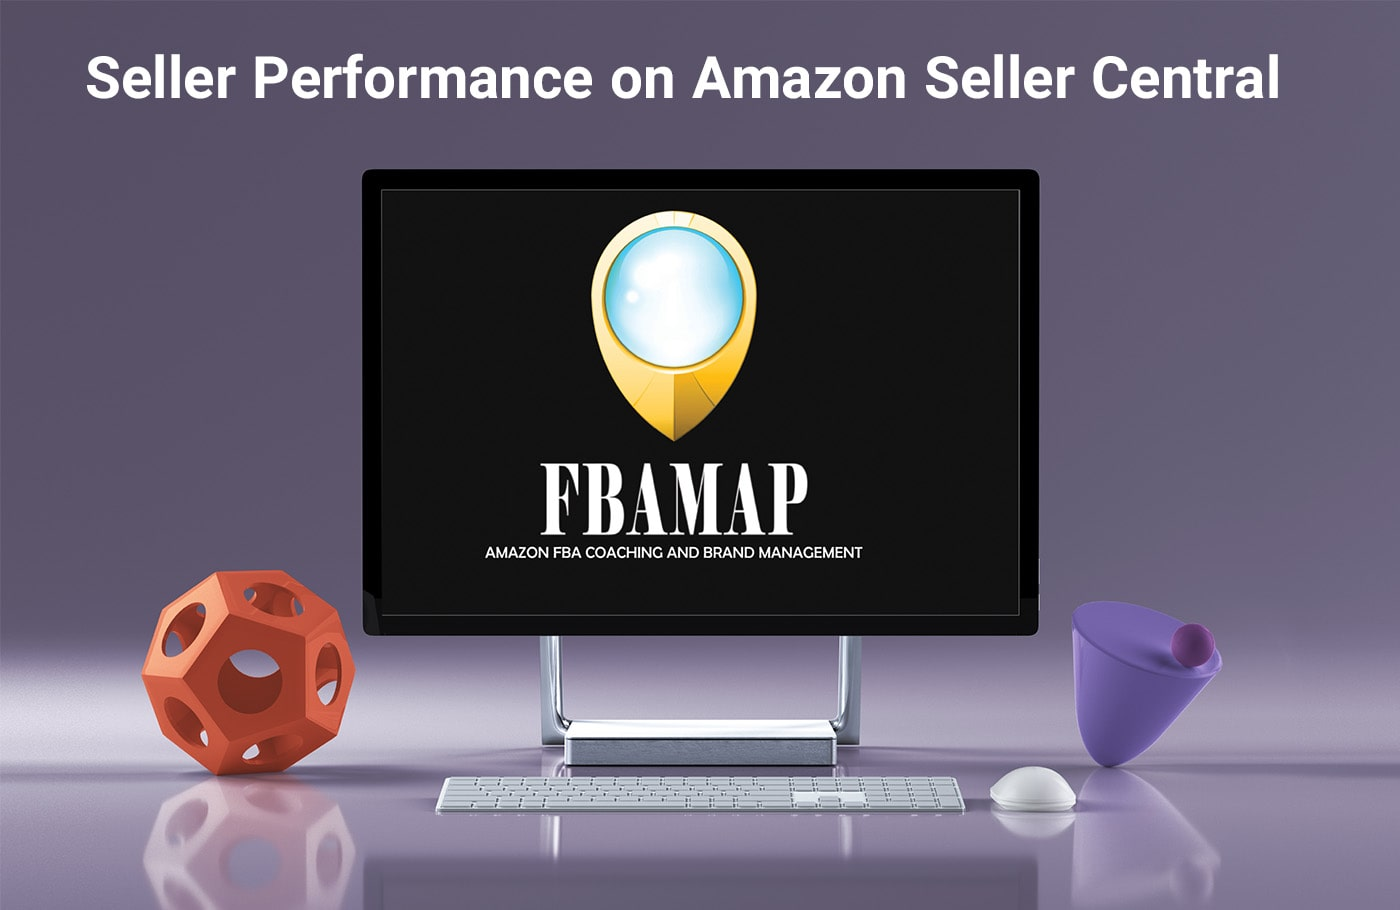 Seller Performance on Amazon Seller Central